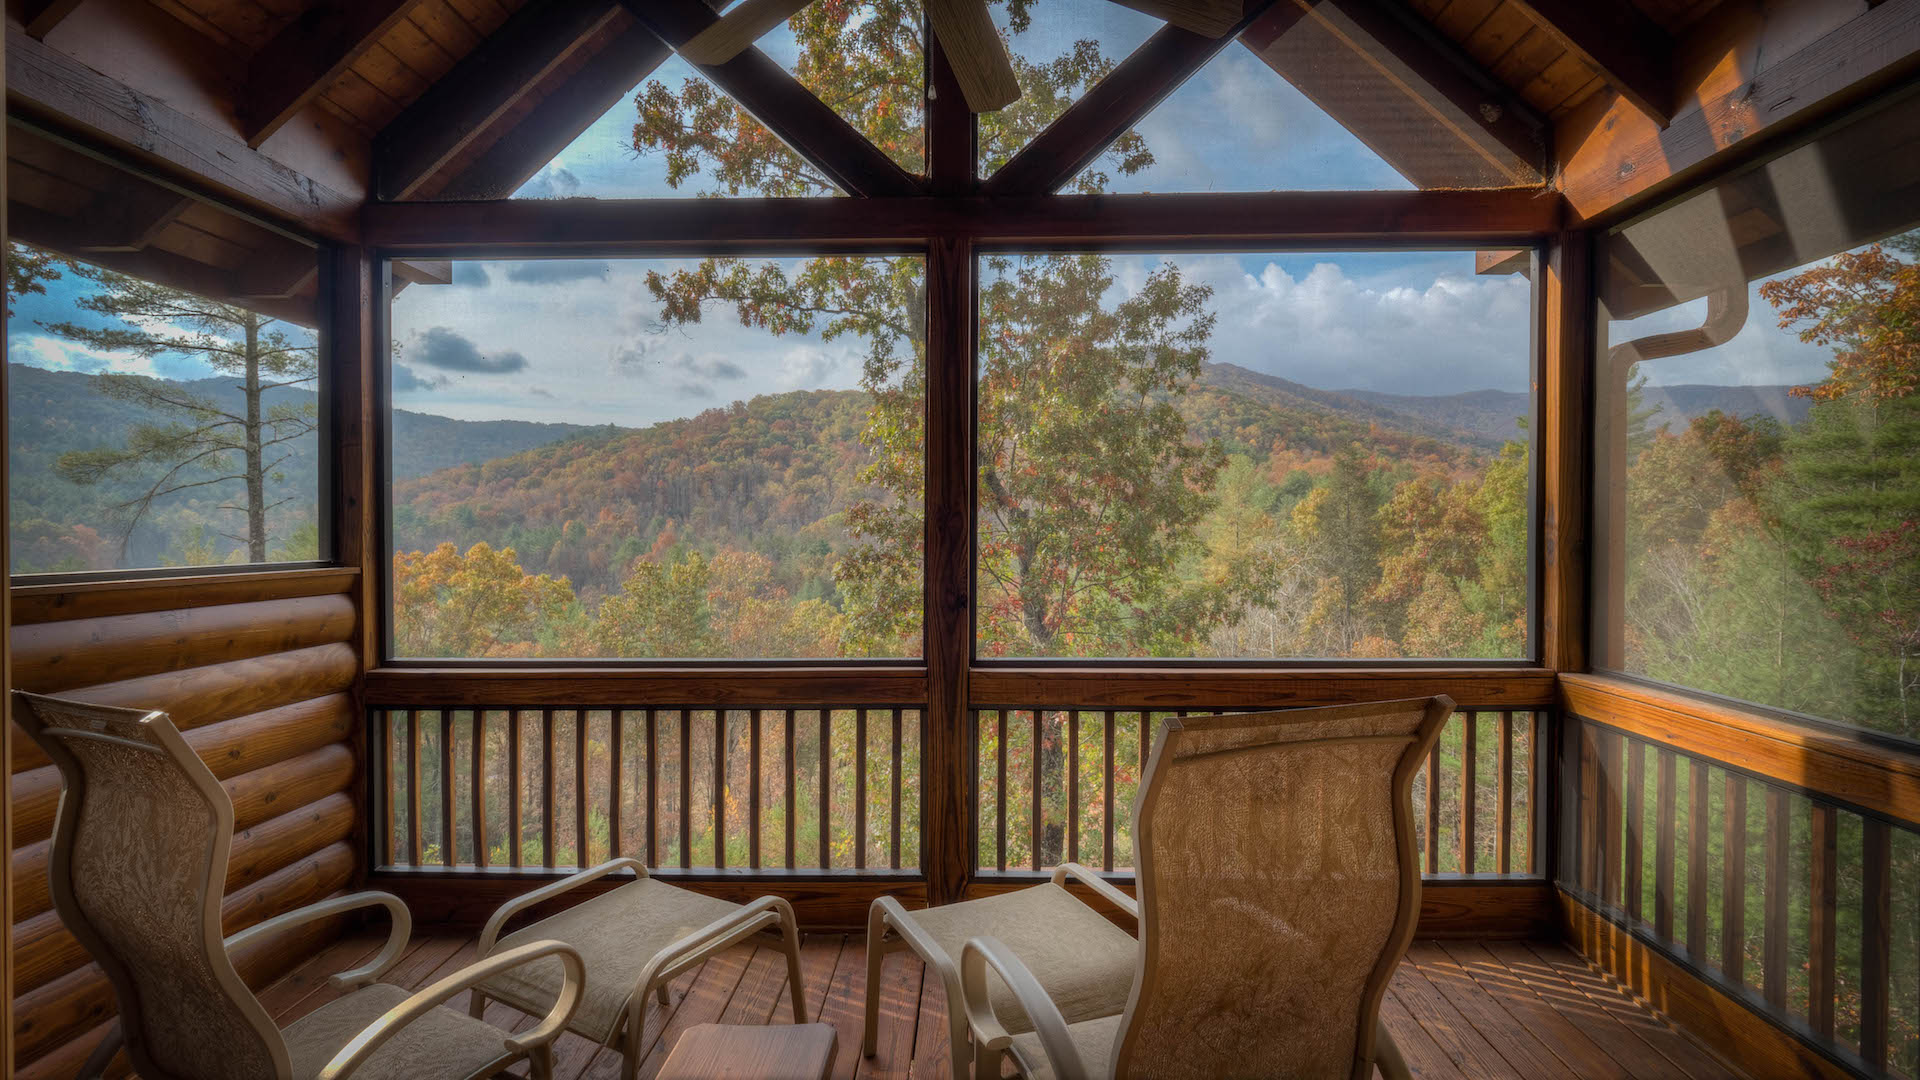 home mountain georgia lw mountains land in cabins foreclosed nc rent beauty the sale for sc ga vacation of live